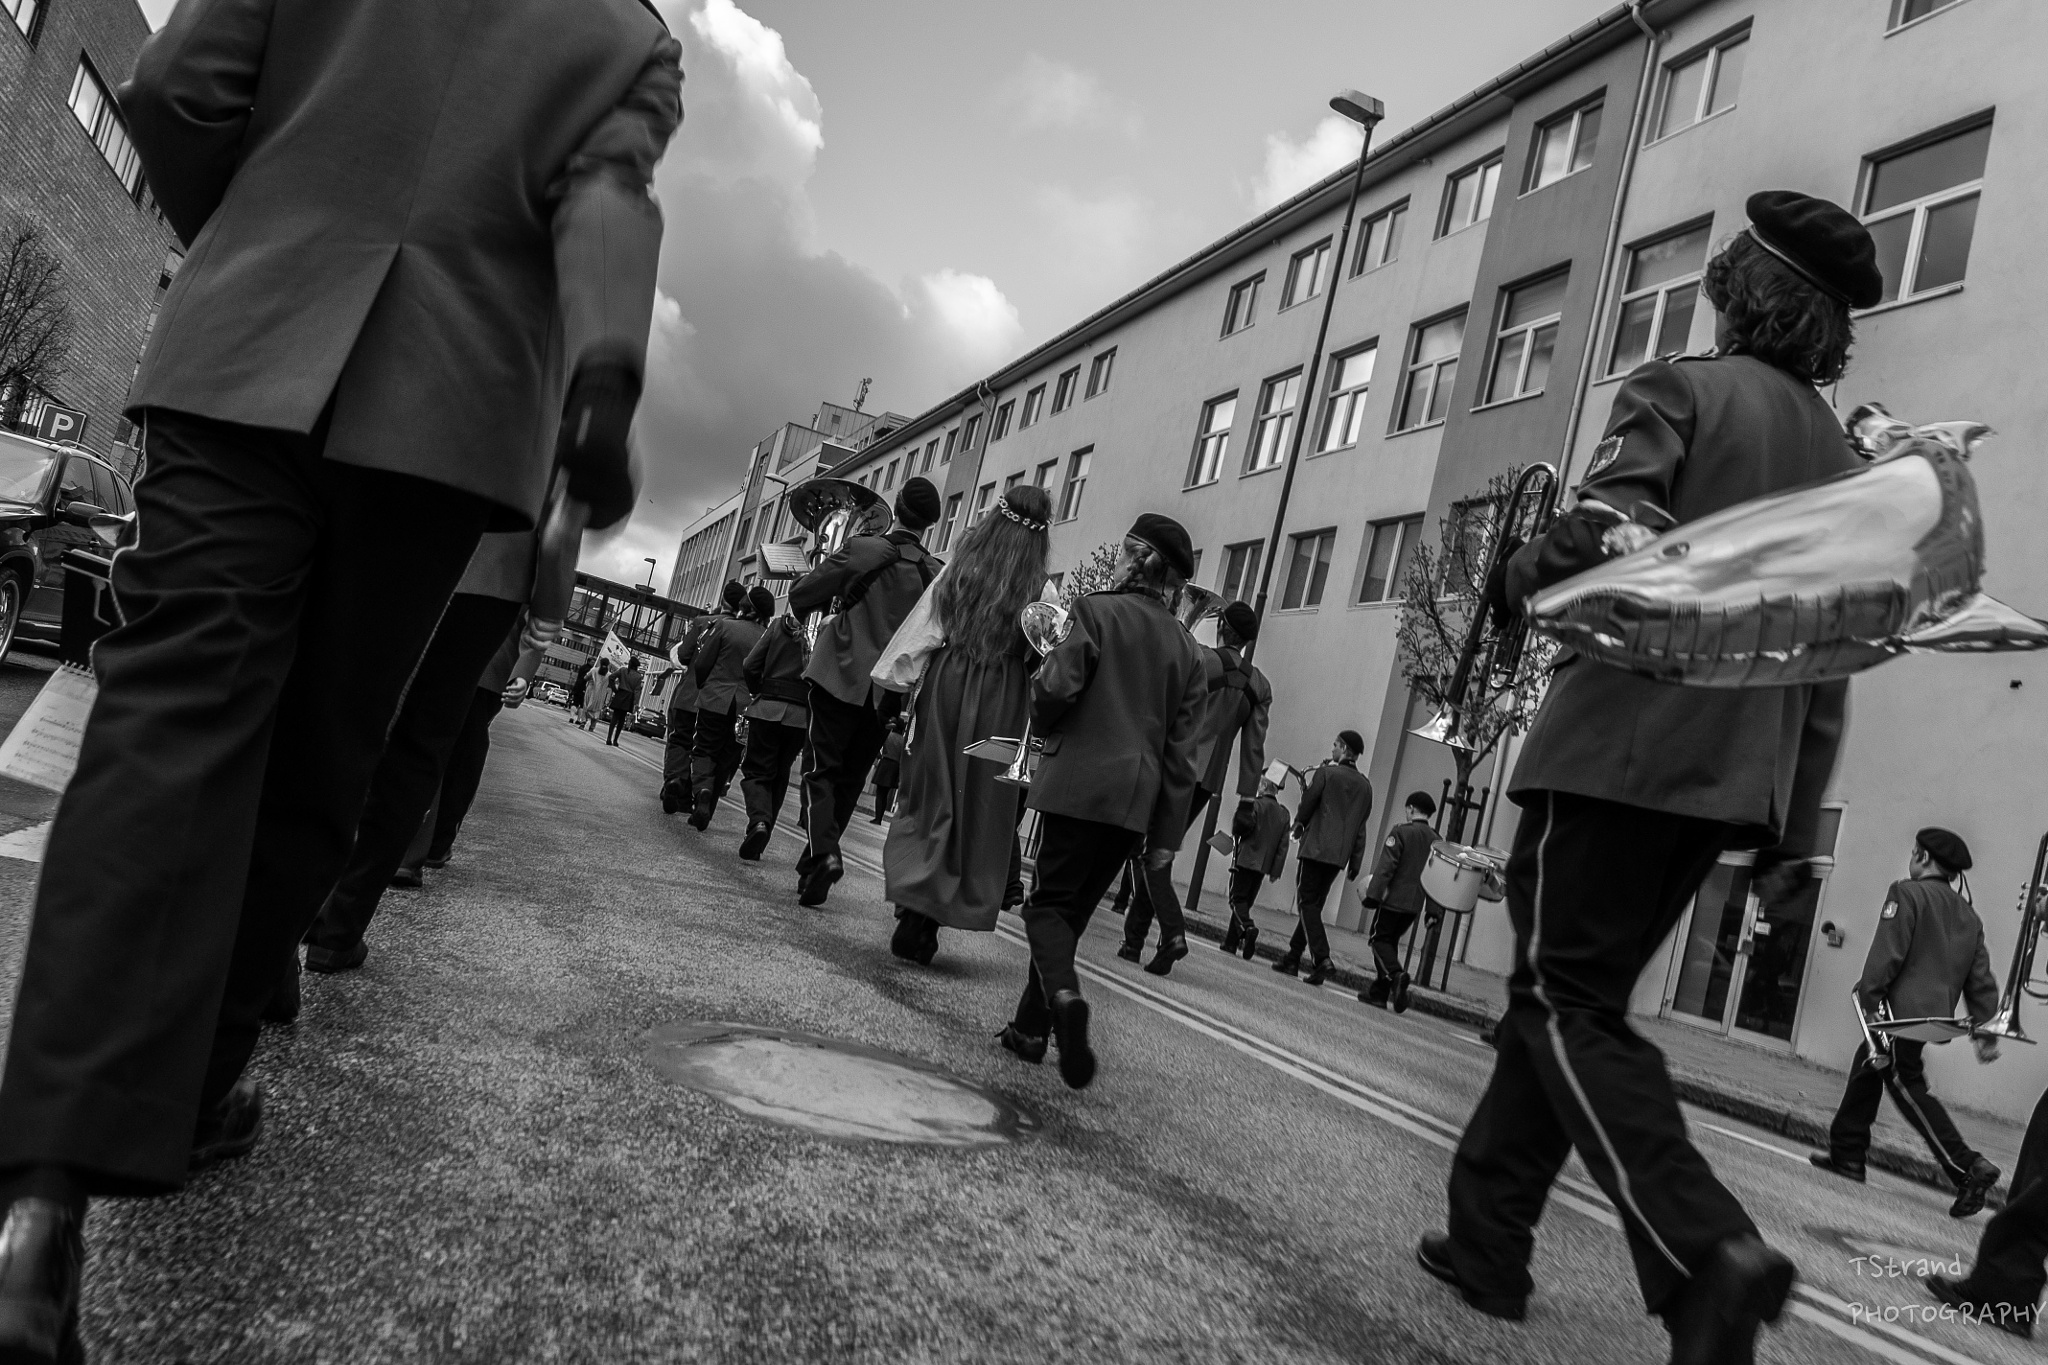 The tail of a marching band by Trond Strand